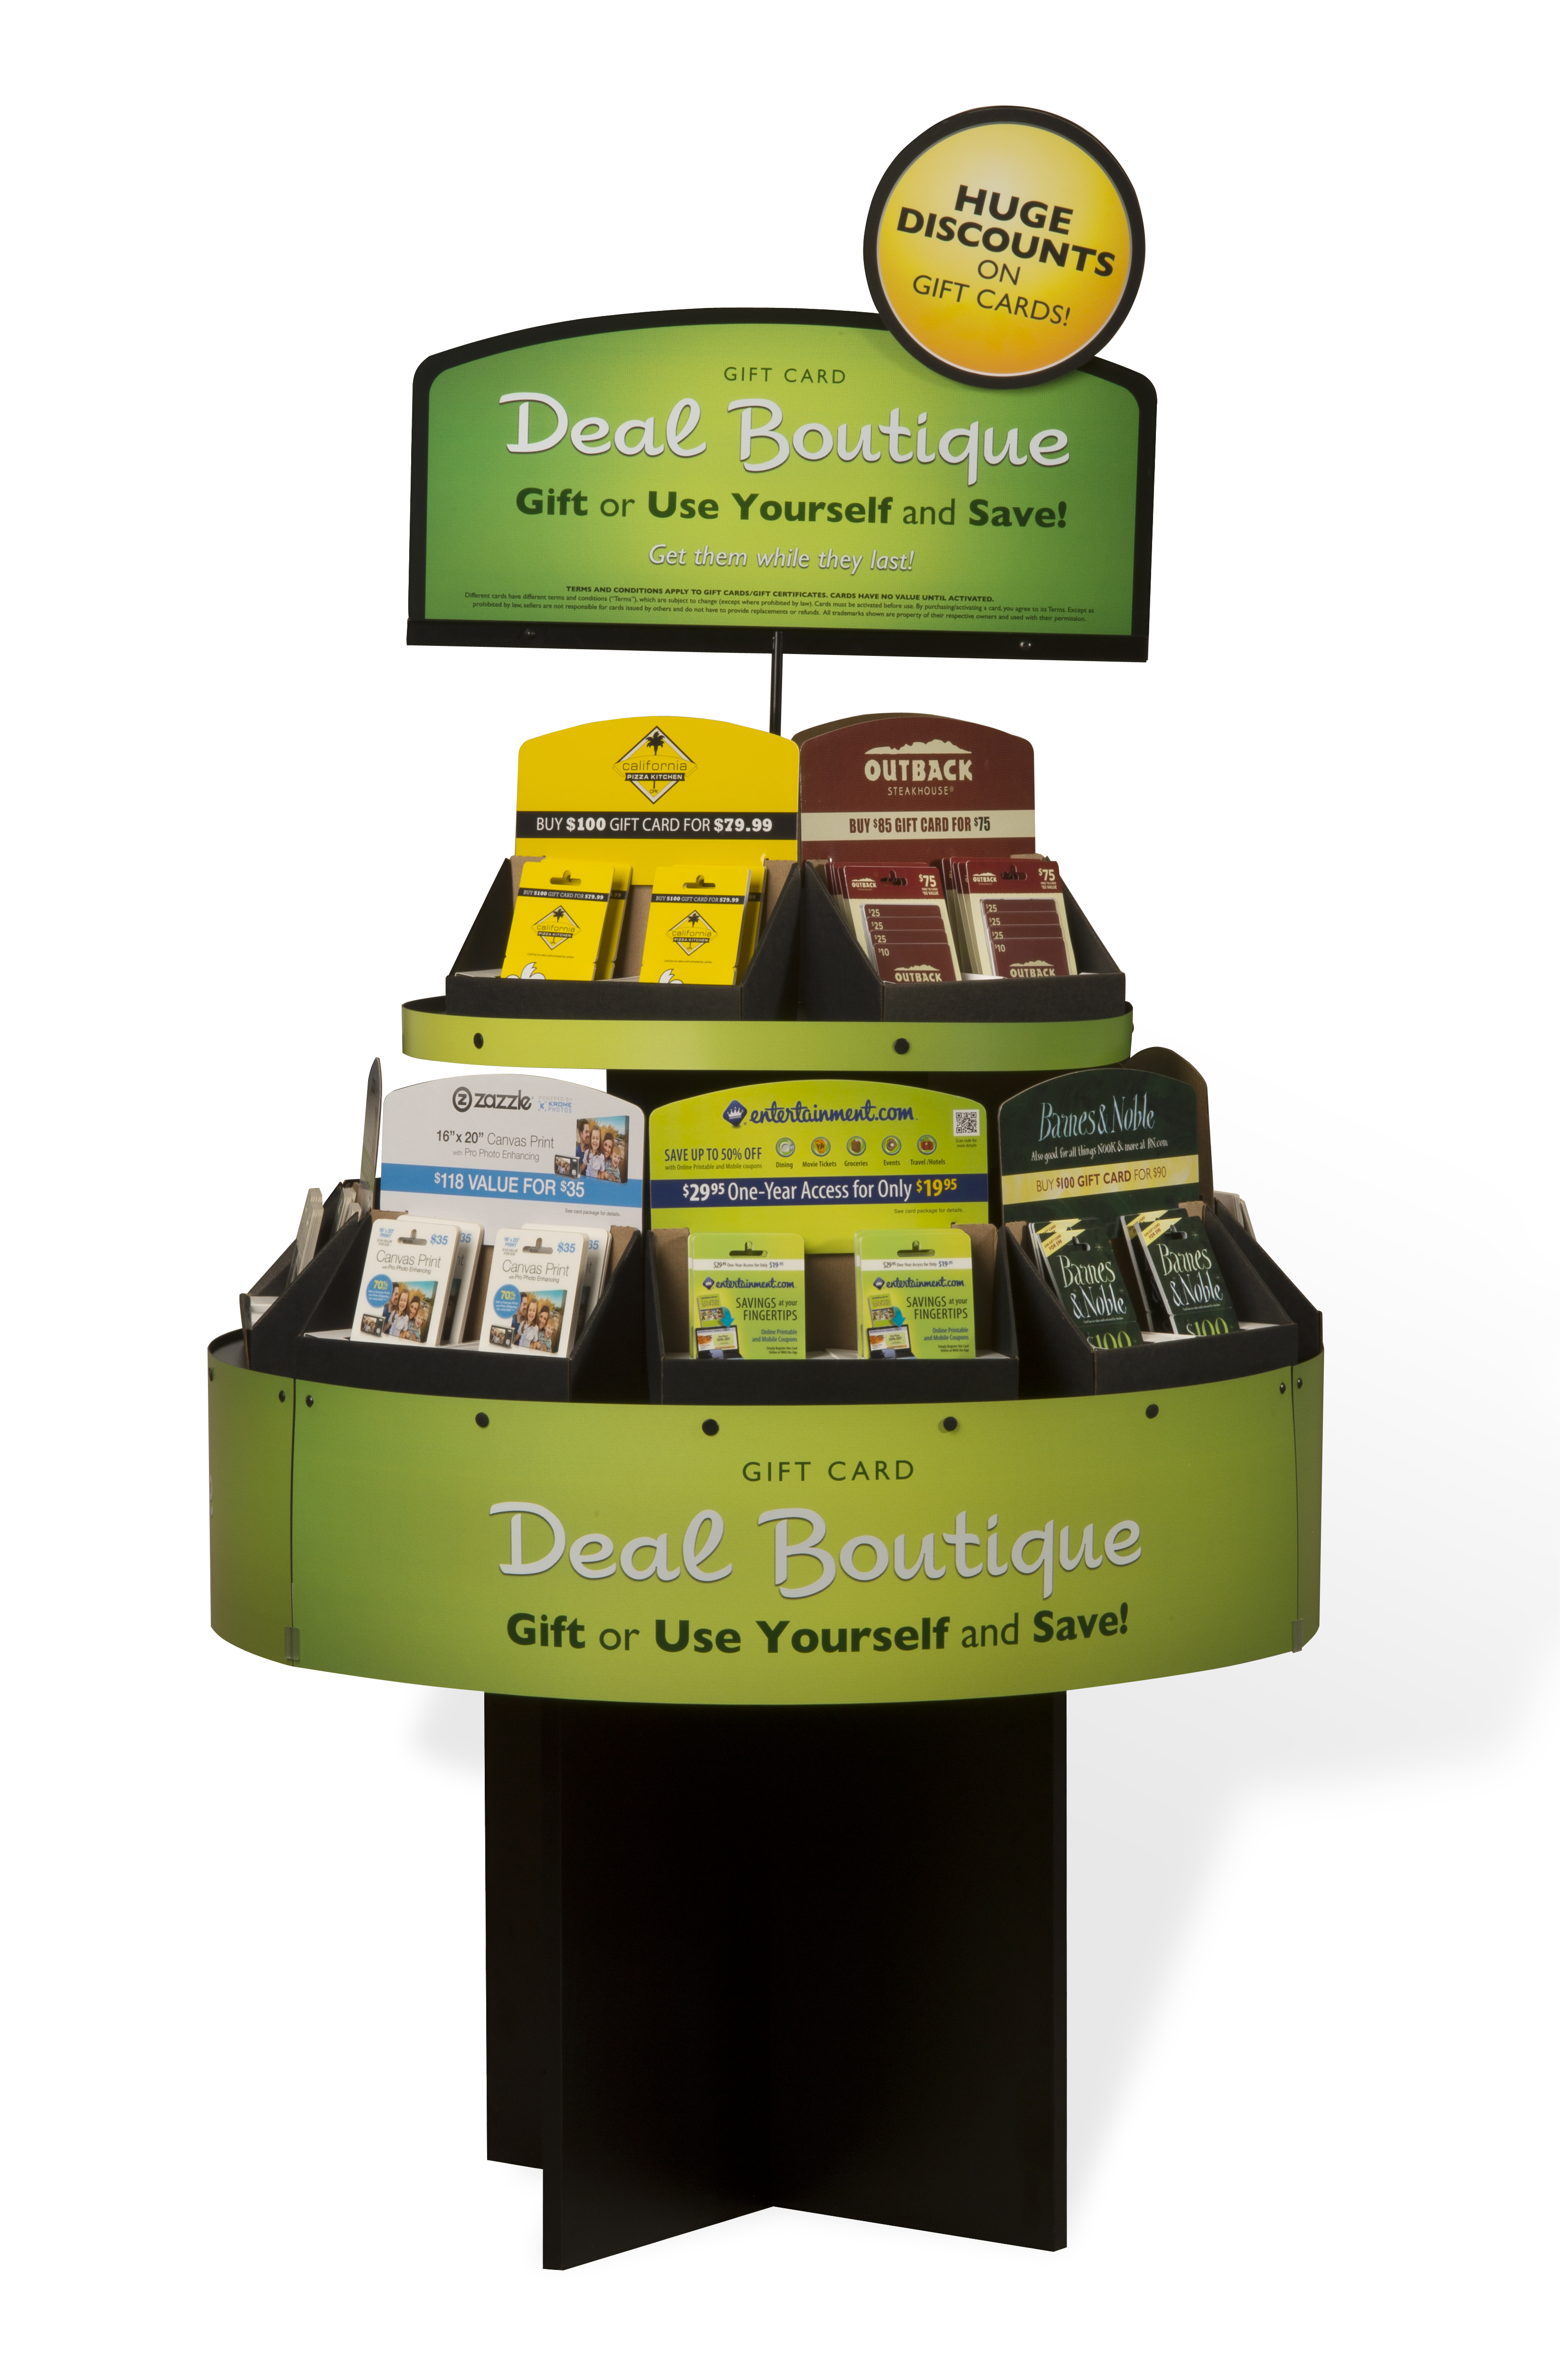 Newly Launched Deal Boutique Hits Washington State Safeway Stores!